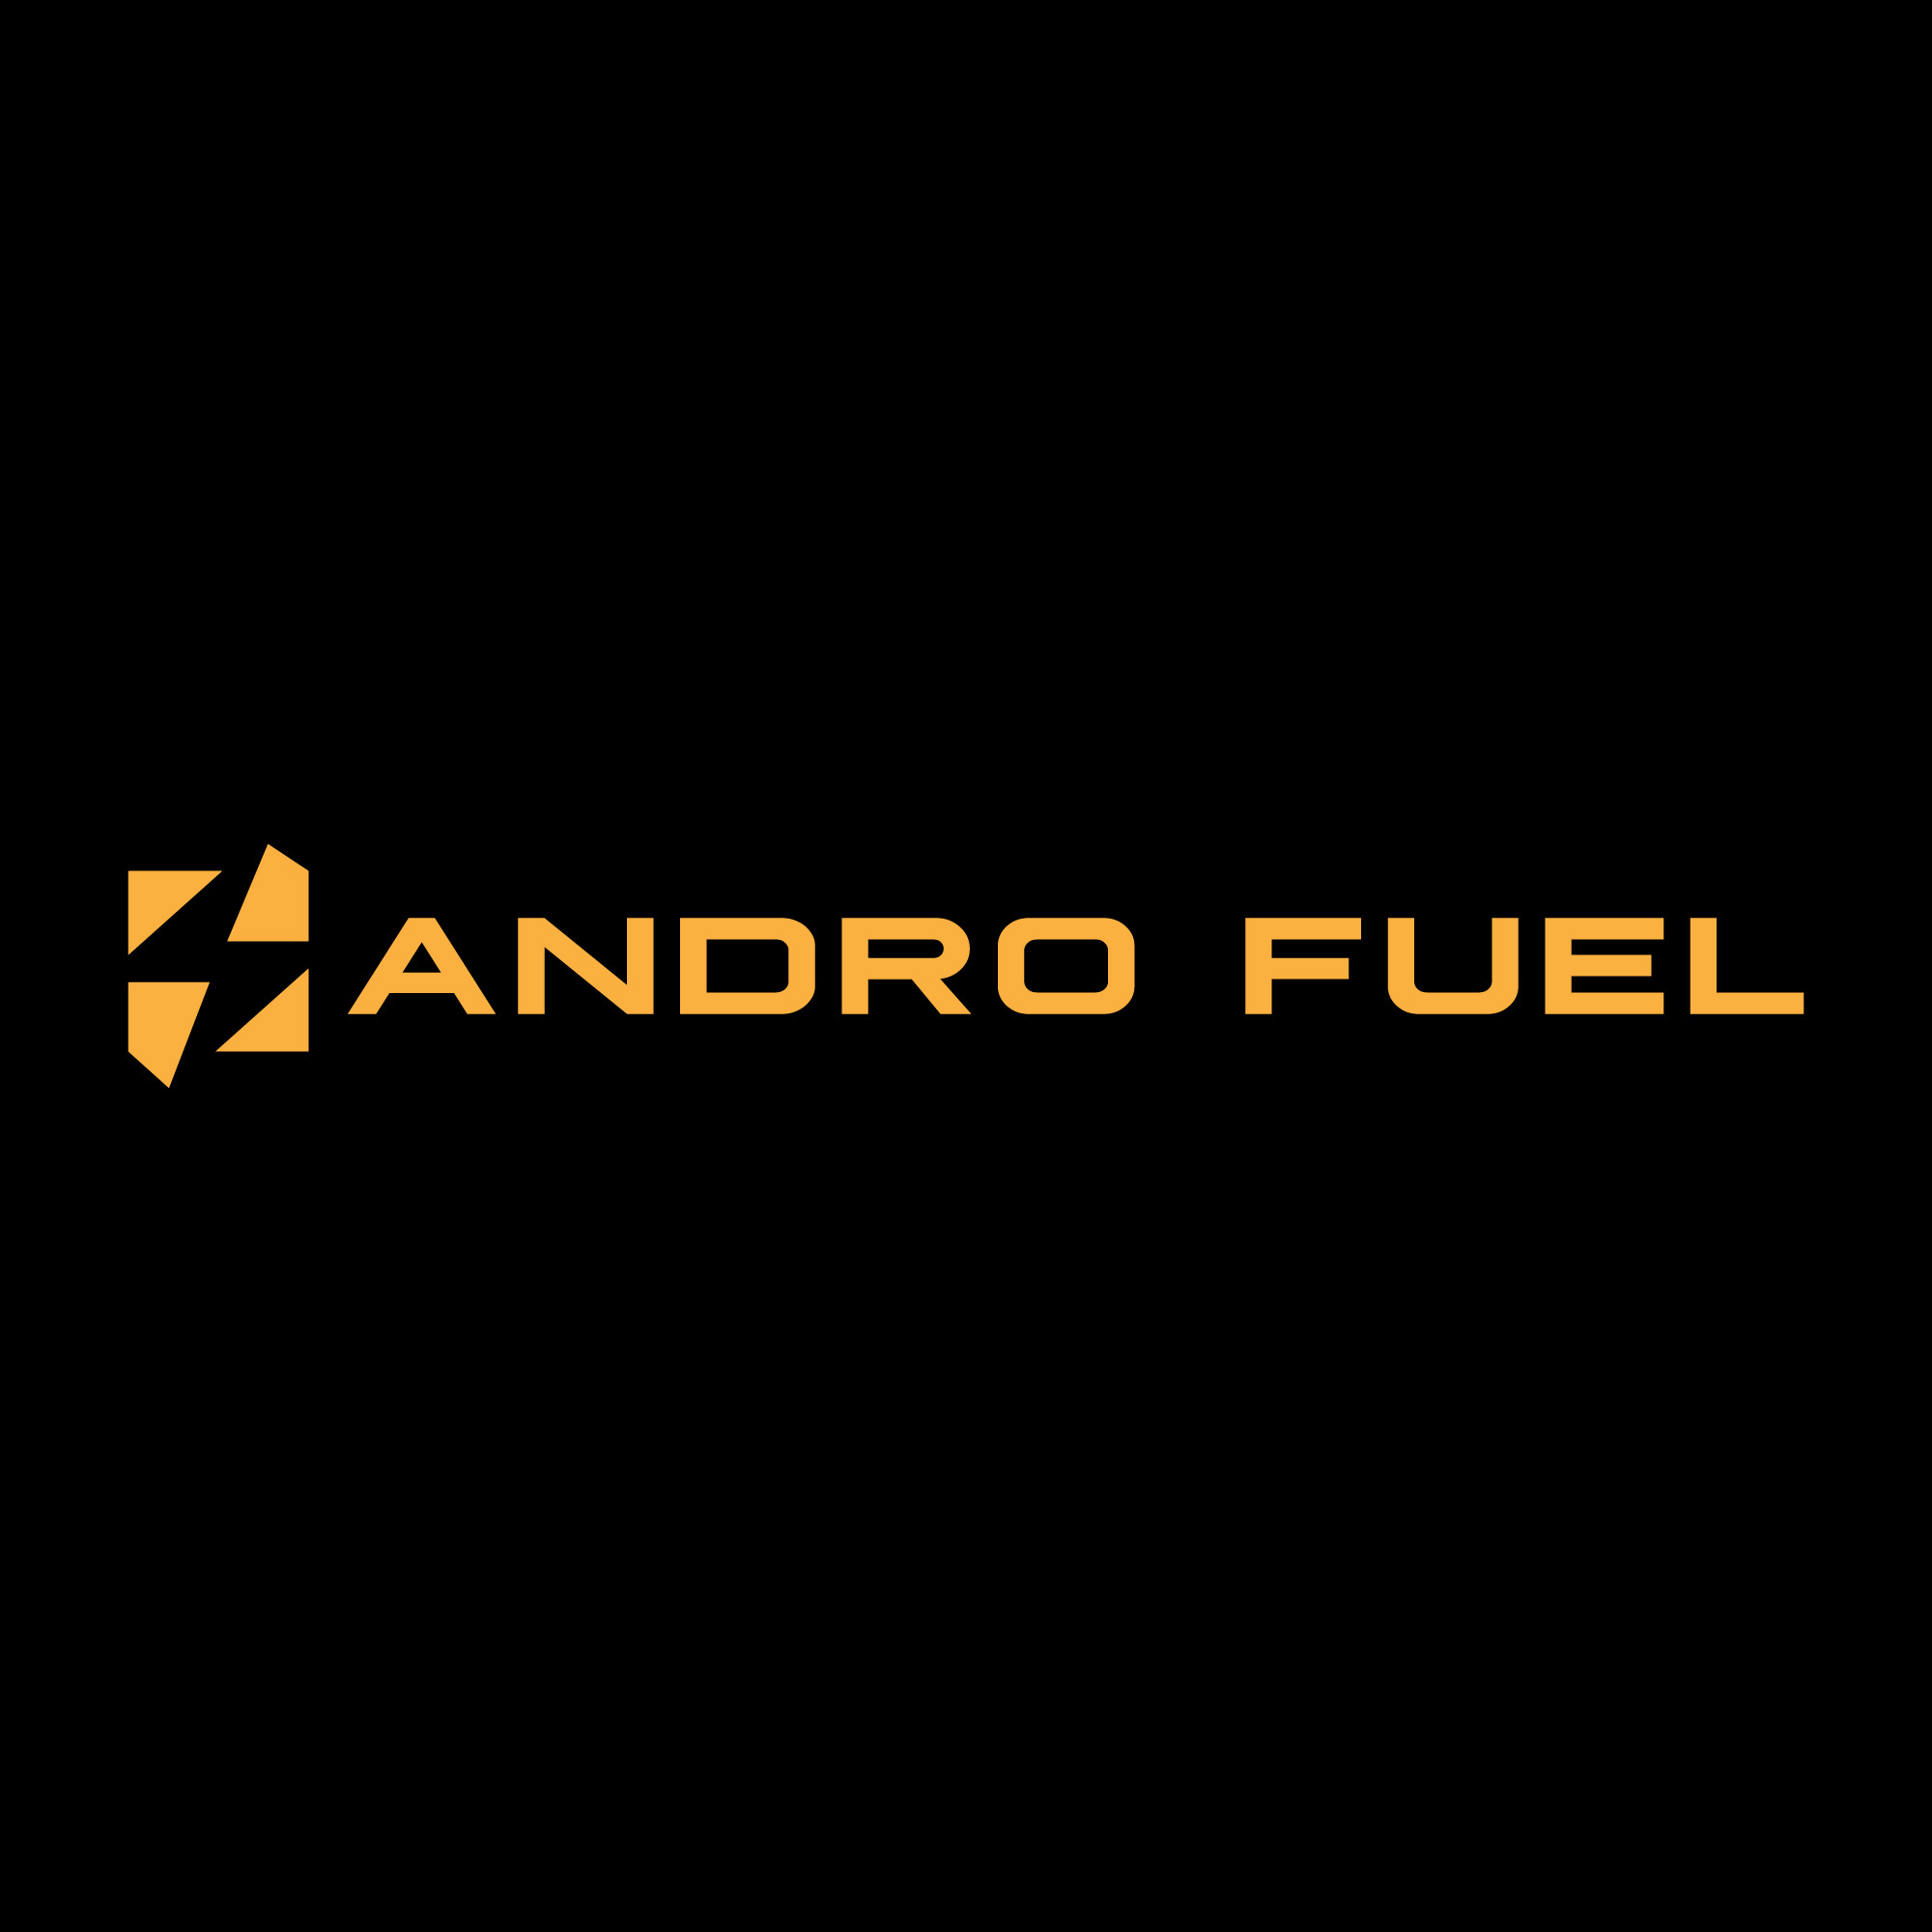 Andro Fuel